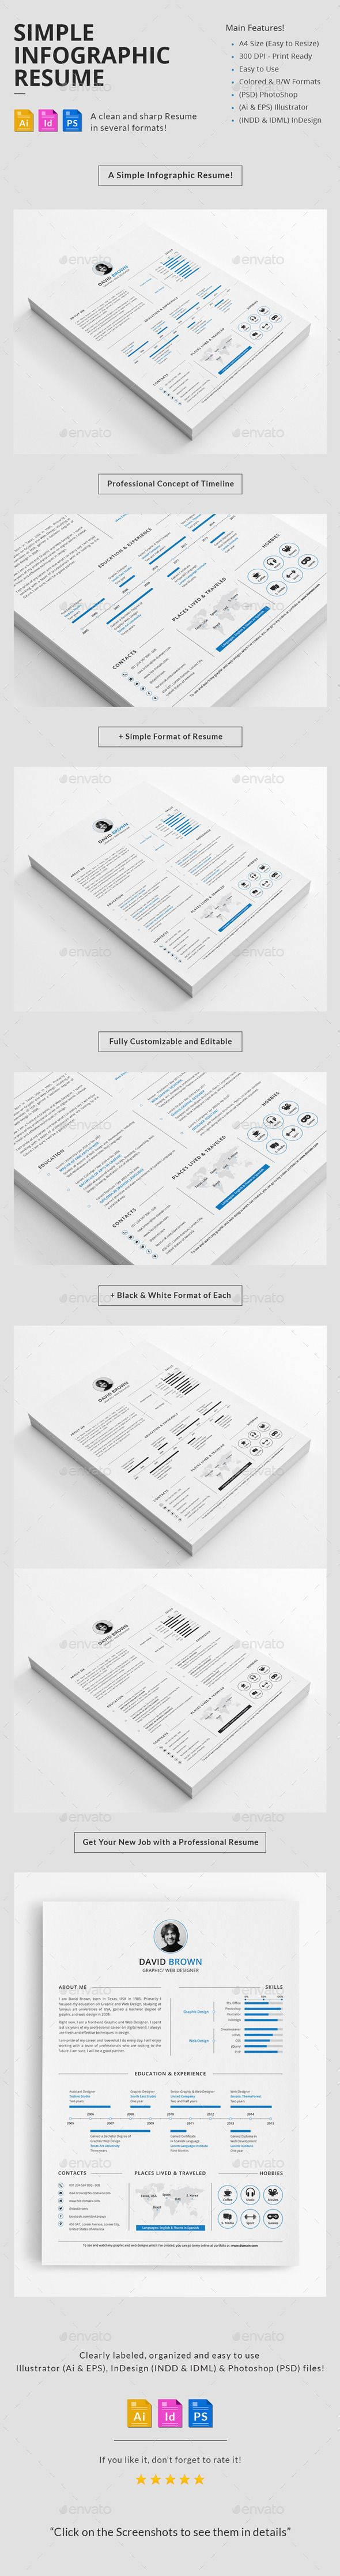 Simple Infographic Resume  Infographic Resume Resume Template